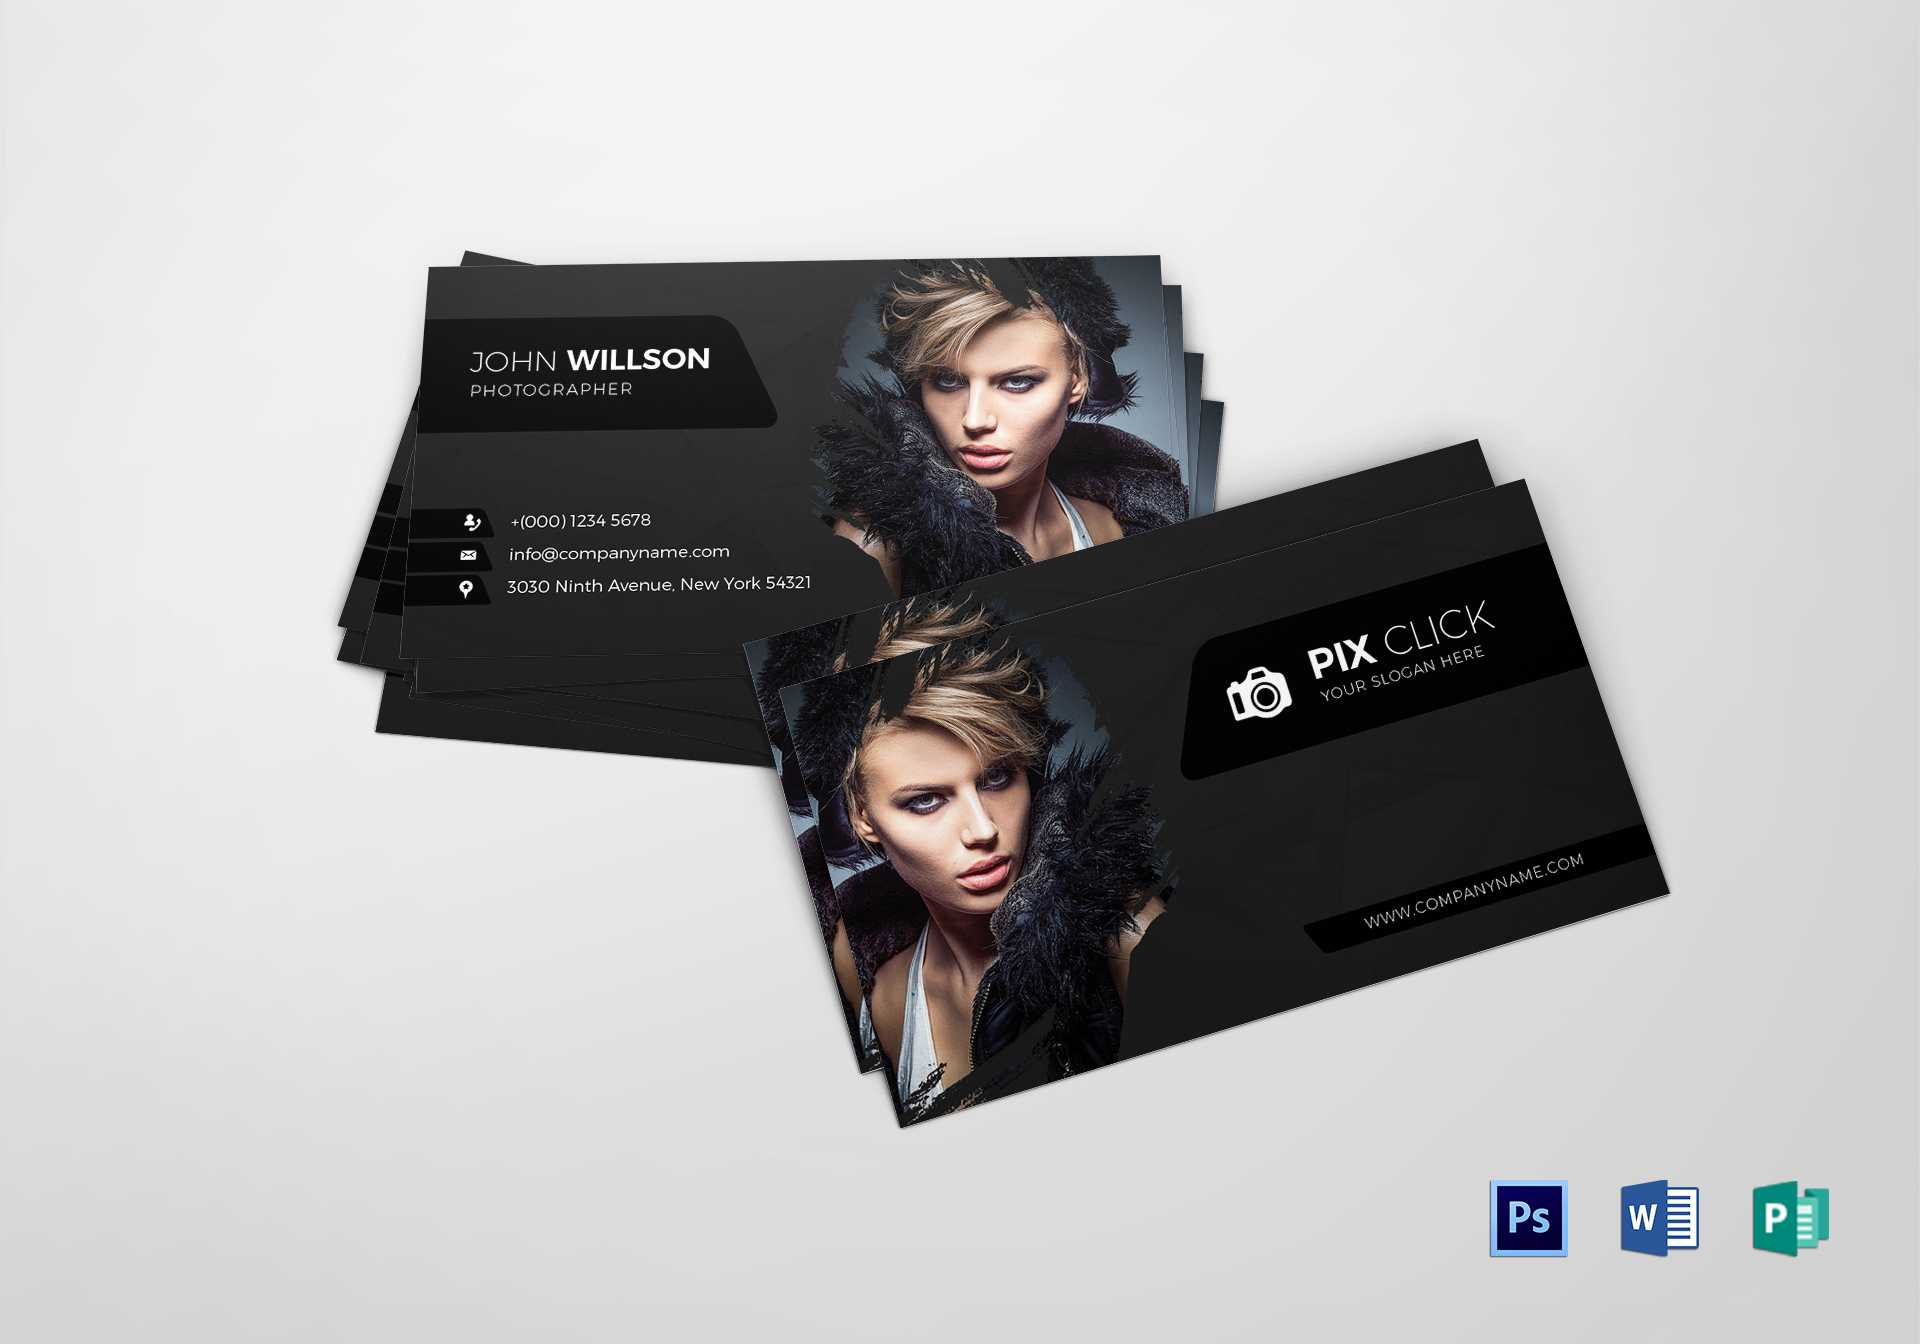 Photographer Business Card Template Intended For Photography Business Card Template Photoshop